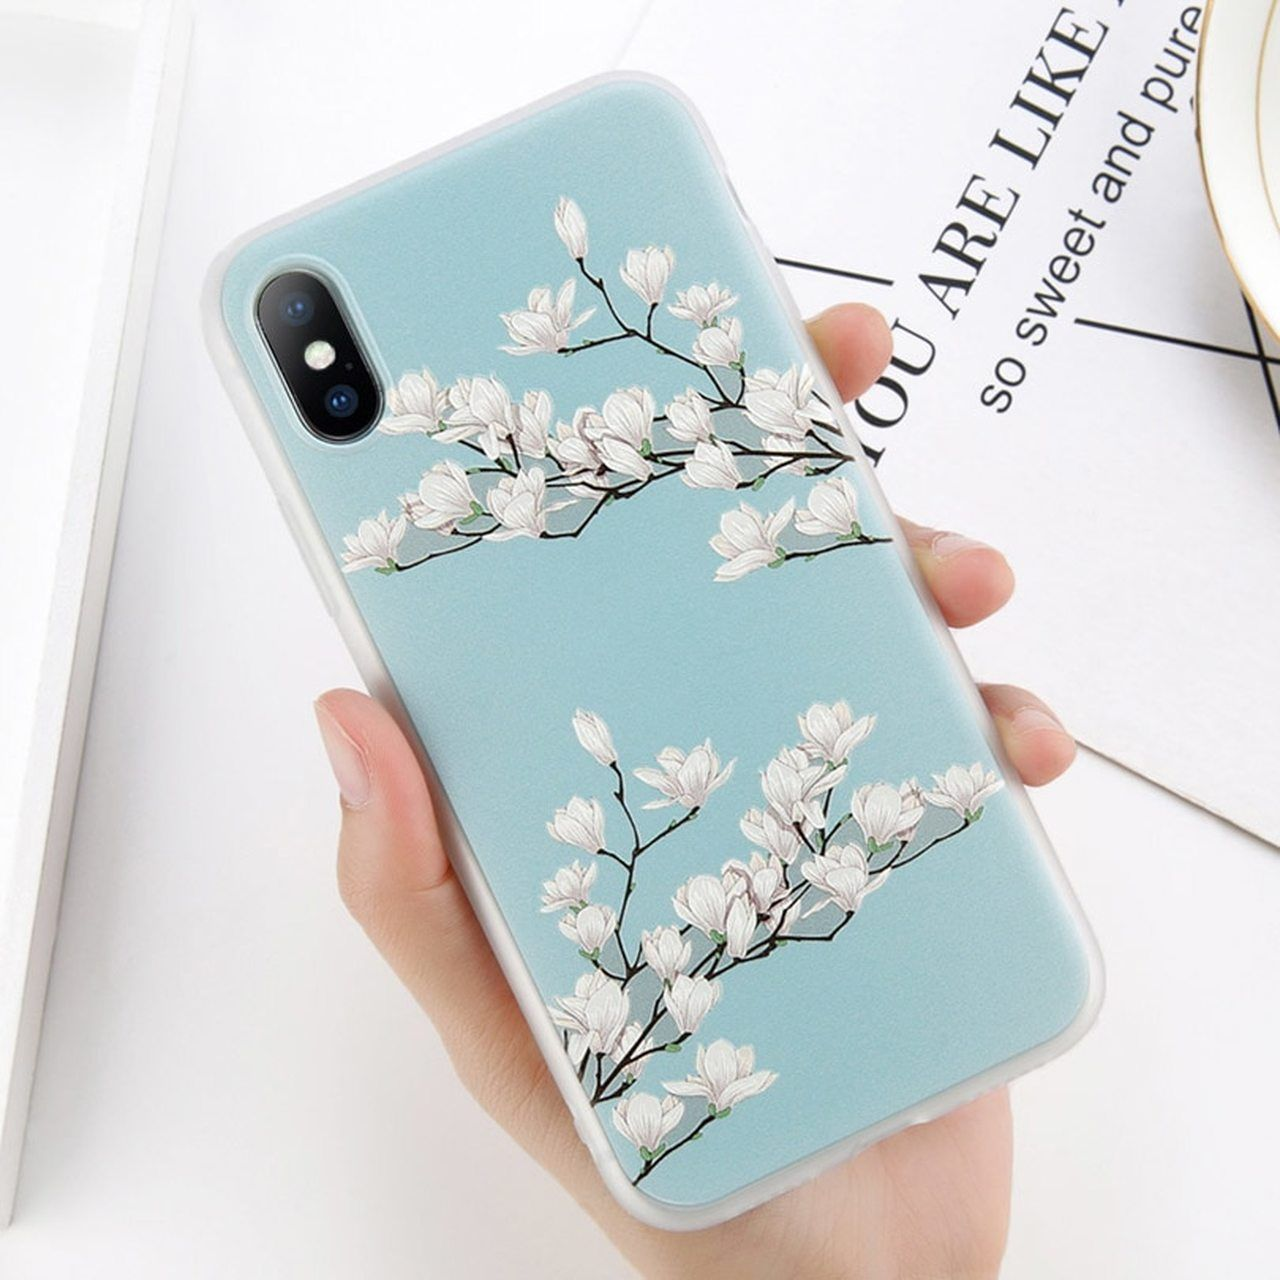 Make your mobile classy with your own unique ideas by custom phone cases online – Doe het zelf